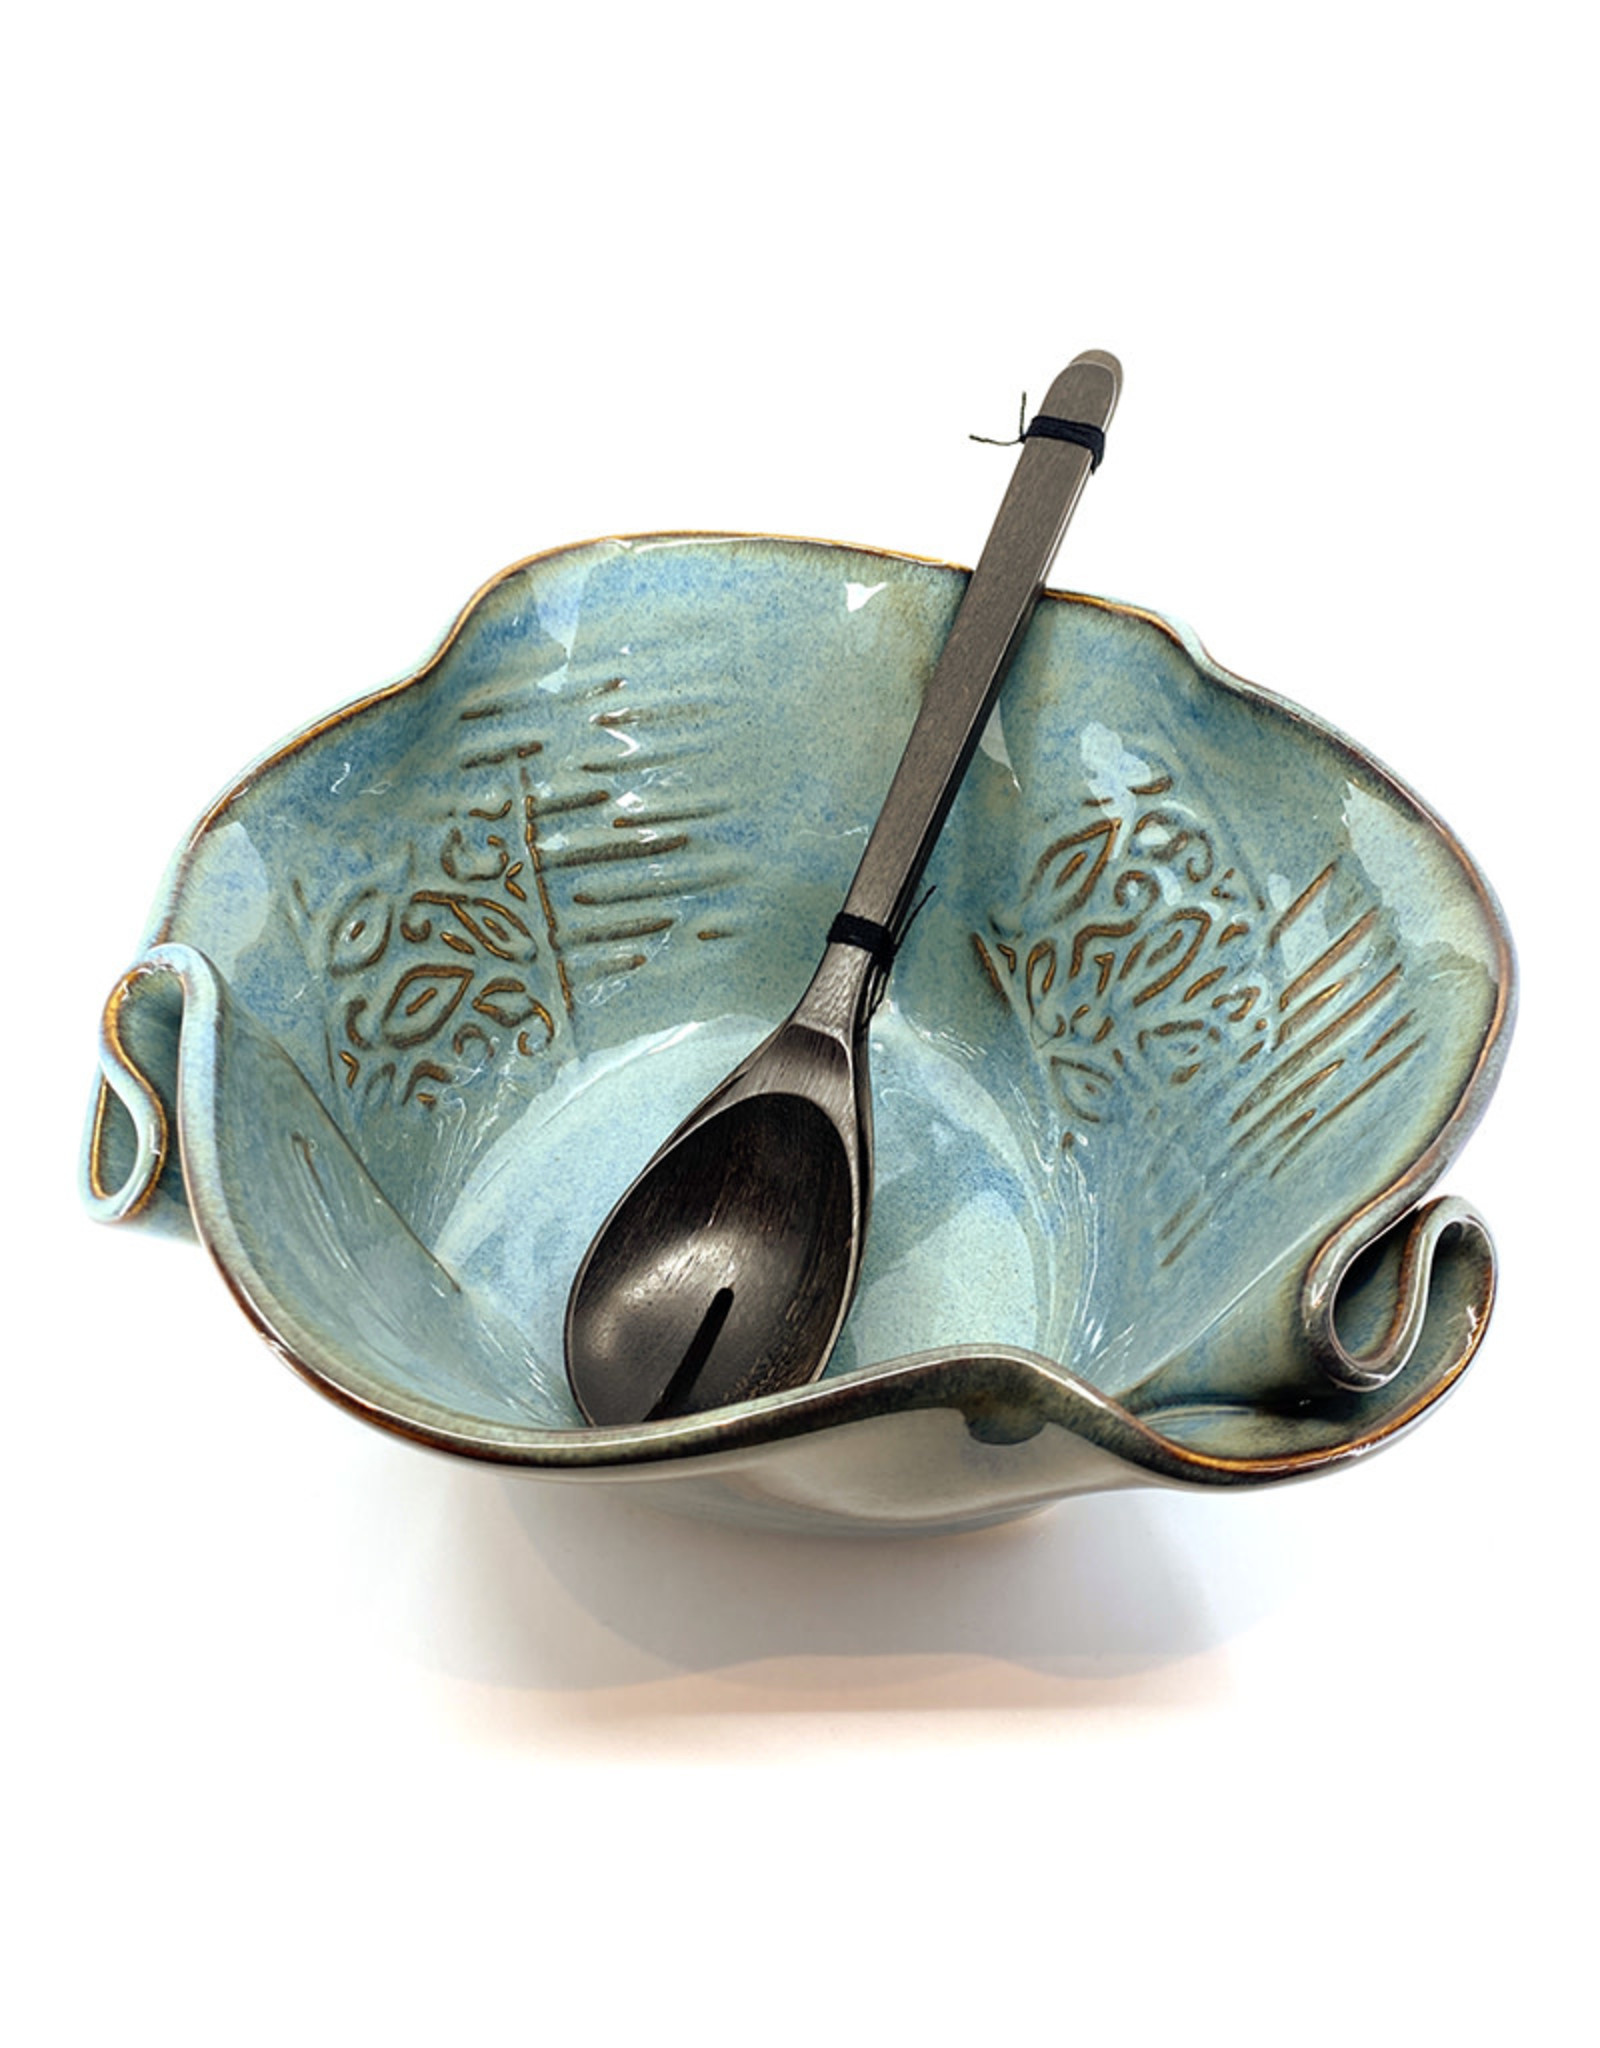 HILBORN POTTERY BLUE MEDLEY SERVING BOWL FOR FUNKY FOOD WITH SERVERS